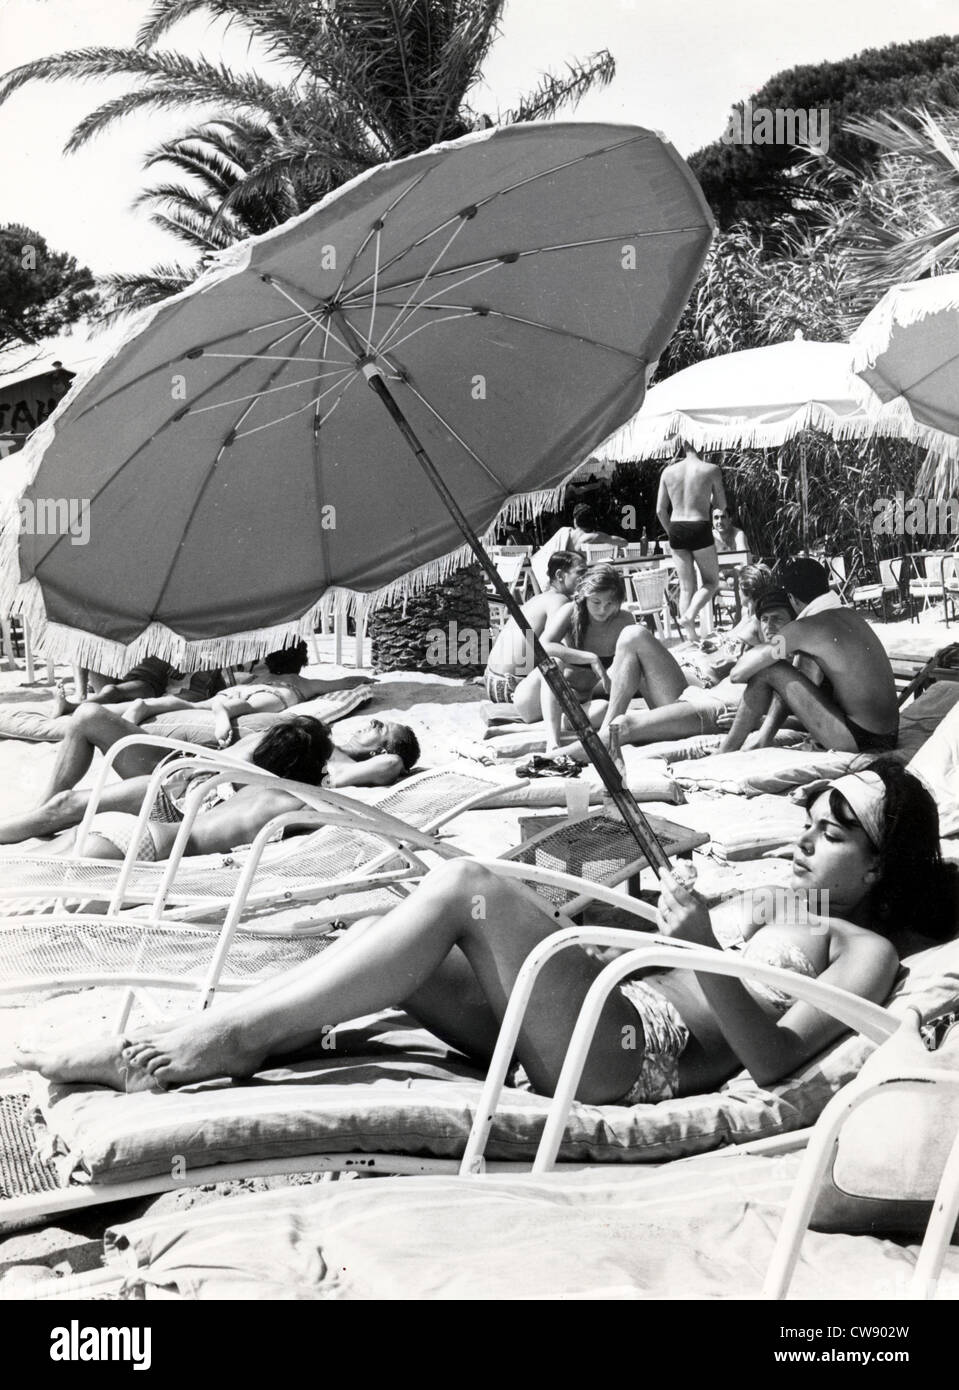 Sunbathing in the '60s - Stock Image